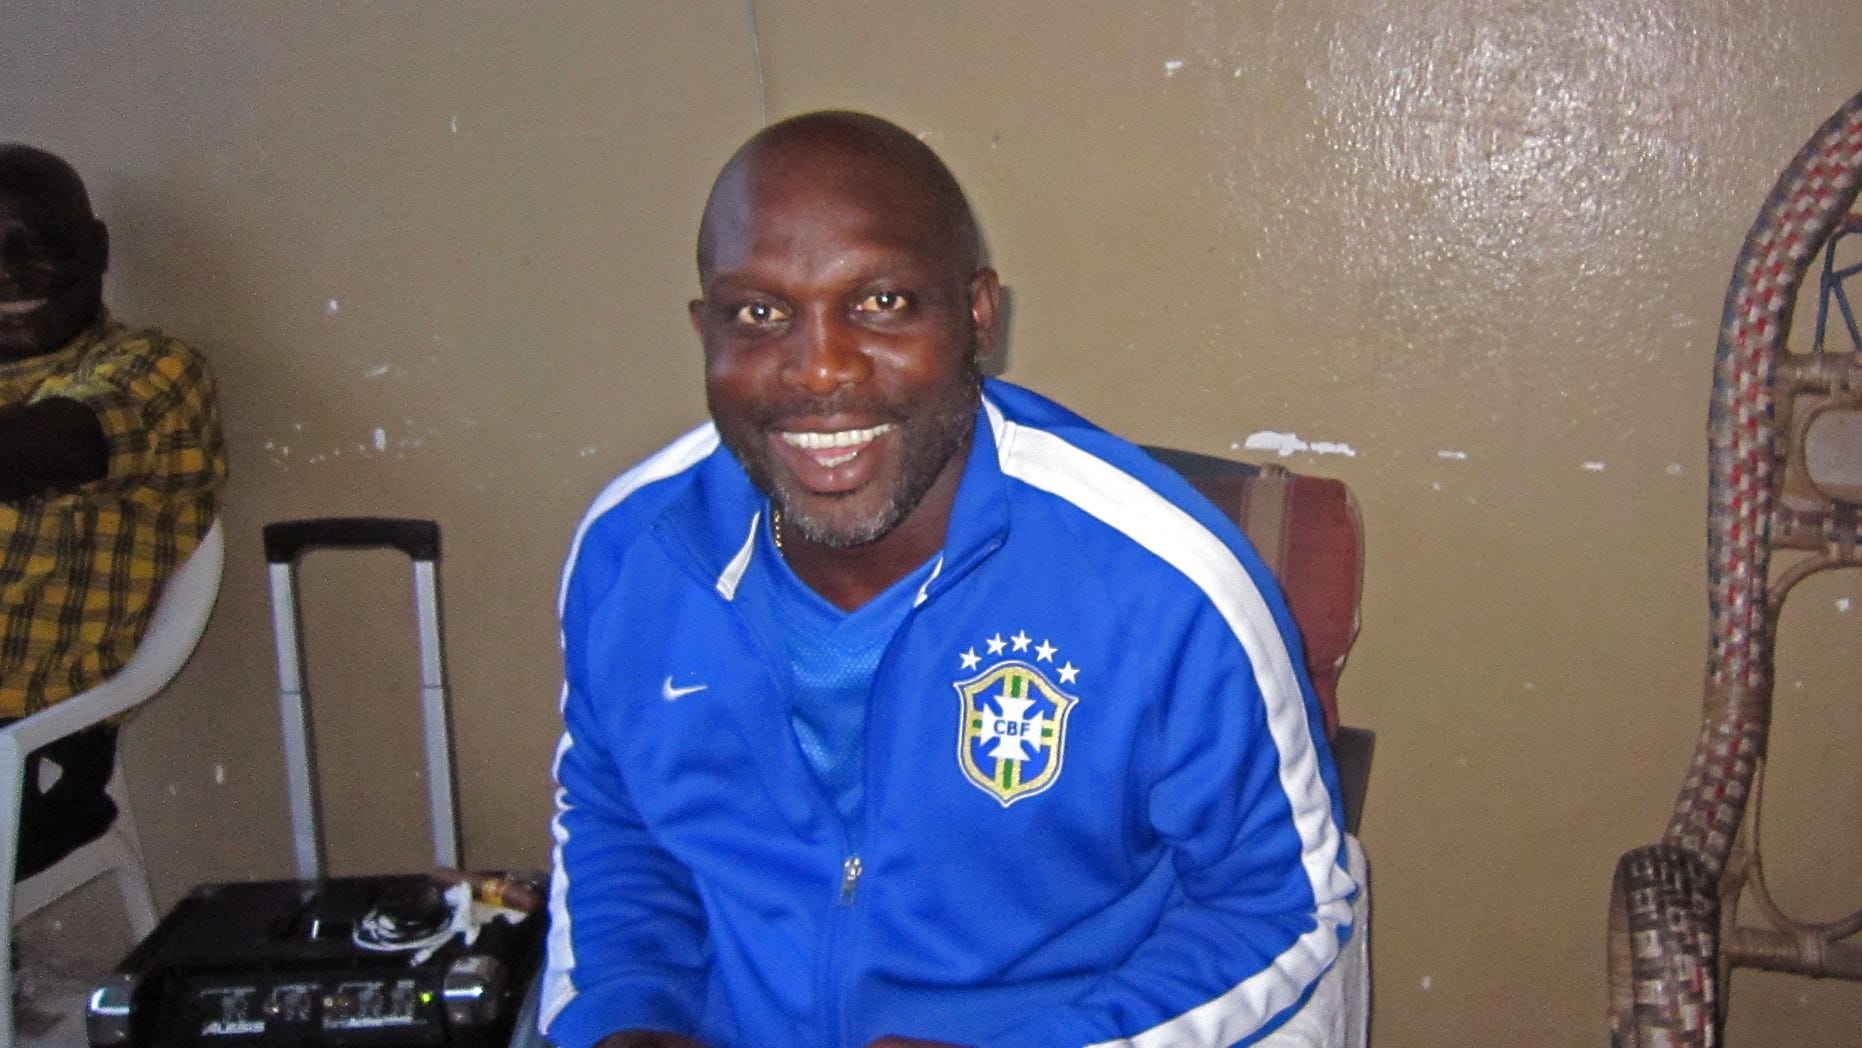 In this photo taken on Sunday, Aug. 10,  2014,  Liberian soccer star George Weah smiles inside a room in the city of  Monrovia, Liberia. Liberias world famous soccer star George Weah has produced a song to raise awareness about Ebola, the deadly disease ravaging West Africa. Weah, who before he retired was FIFAs player of the year, is now a politician and singer.(AP Photo/Jonathan Paye-Layleh)